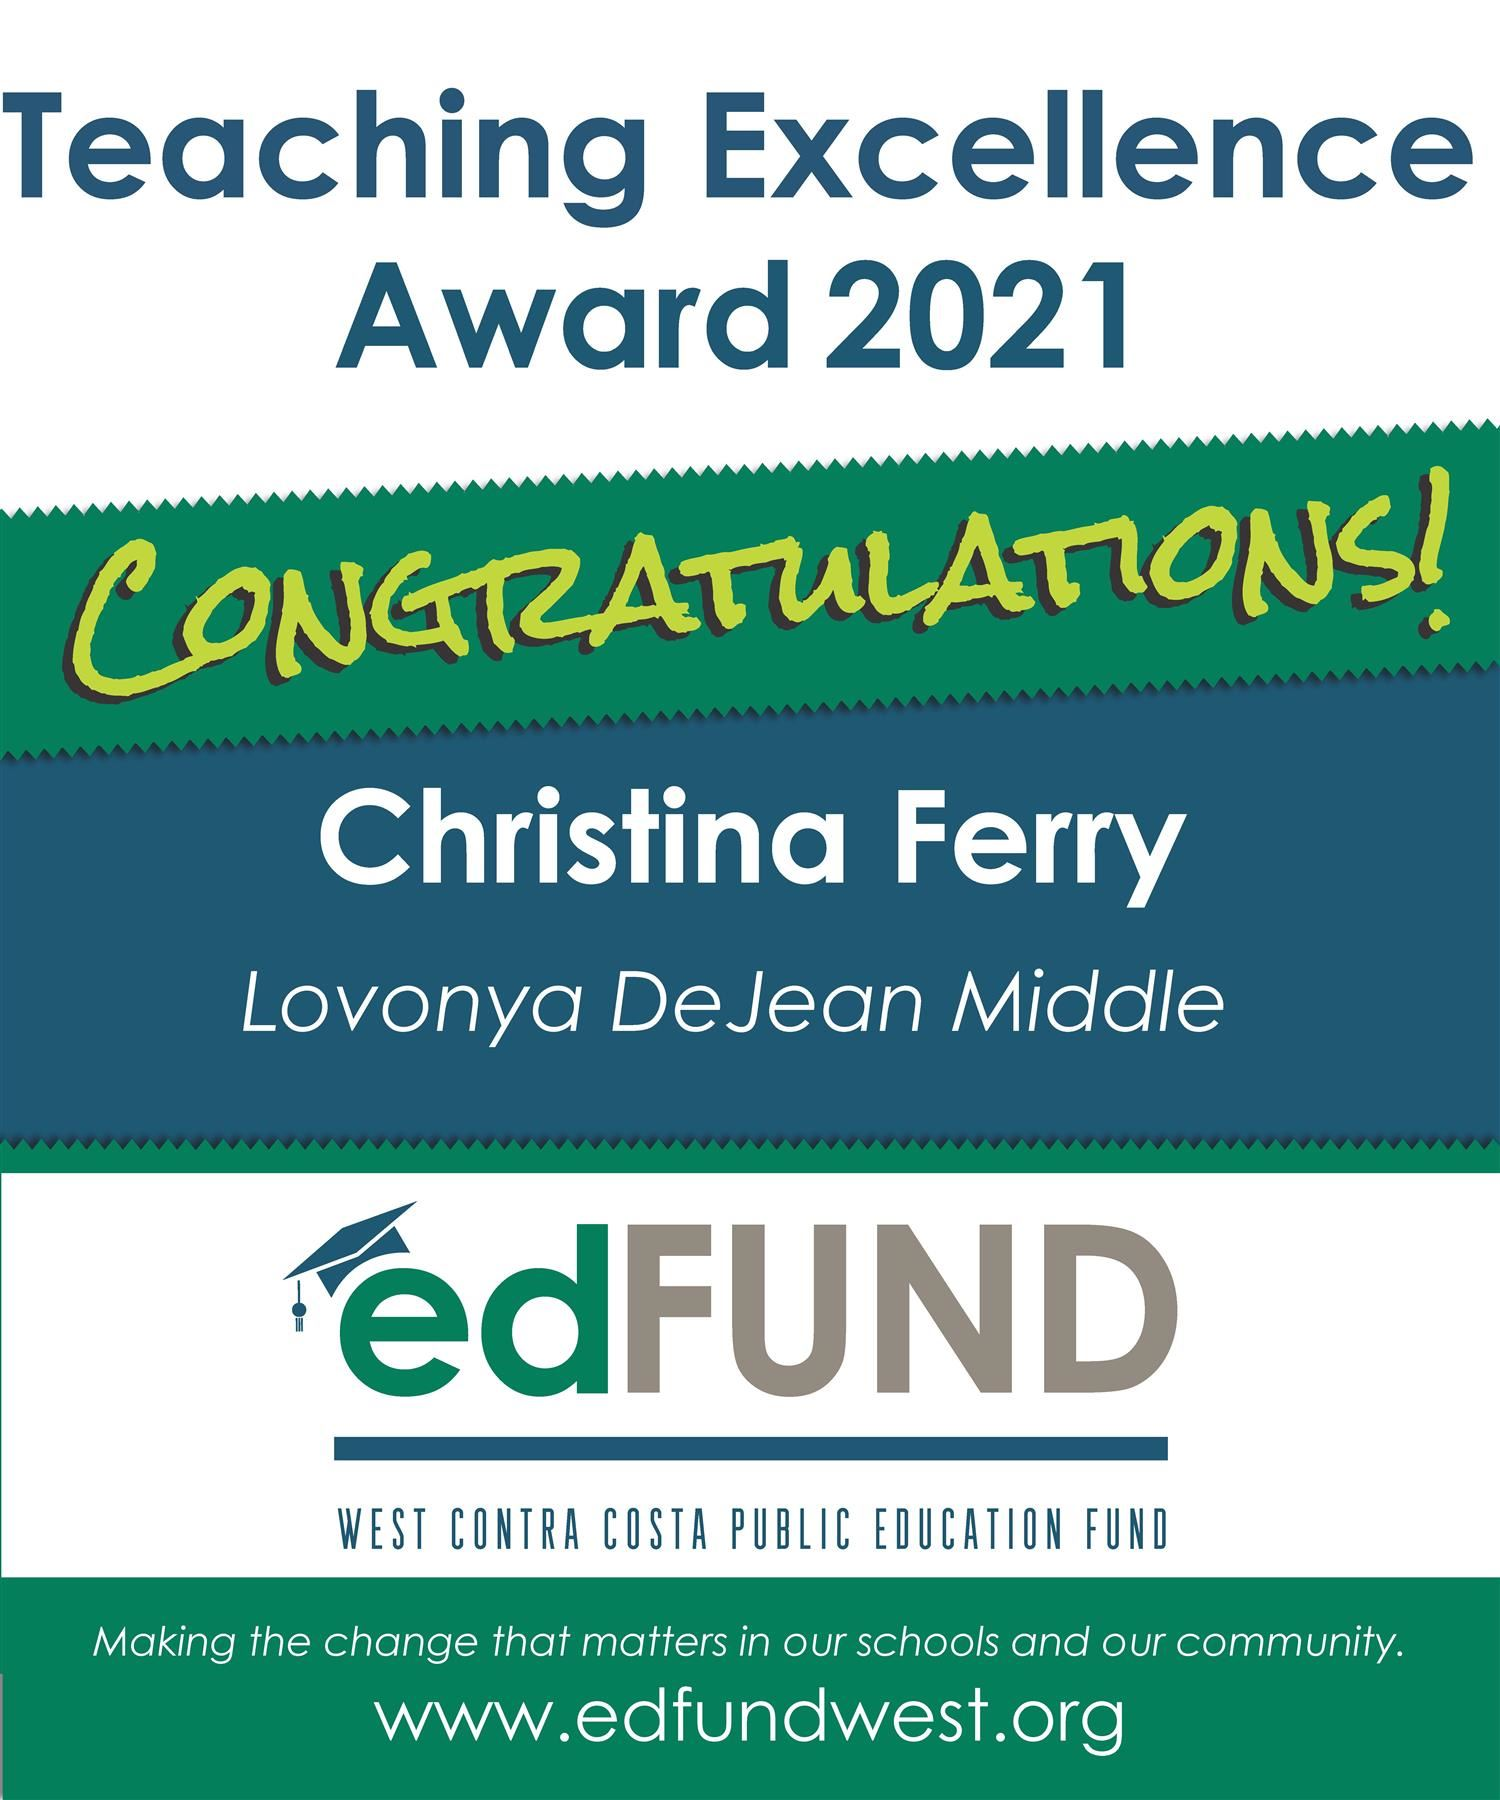 DeJean Middle School Christina Ferry a Teaching Excellence Award Winner